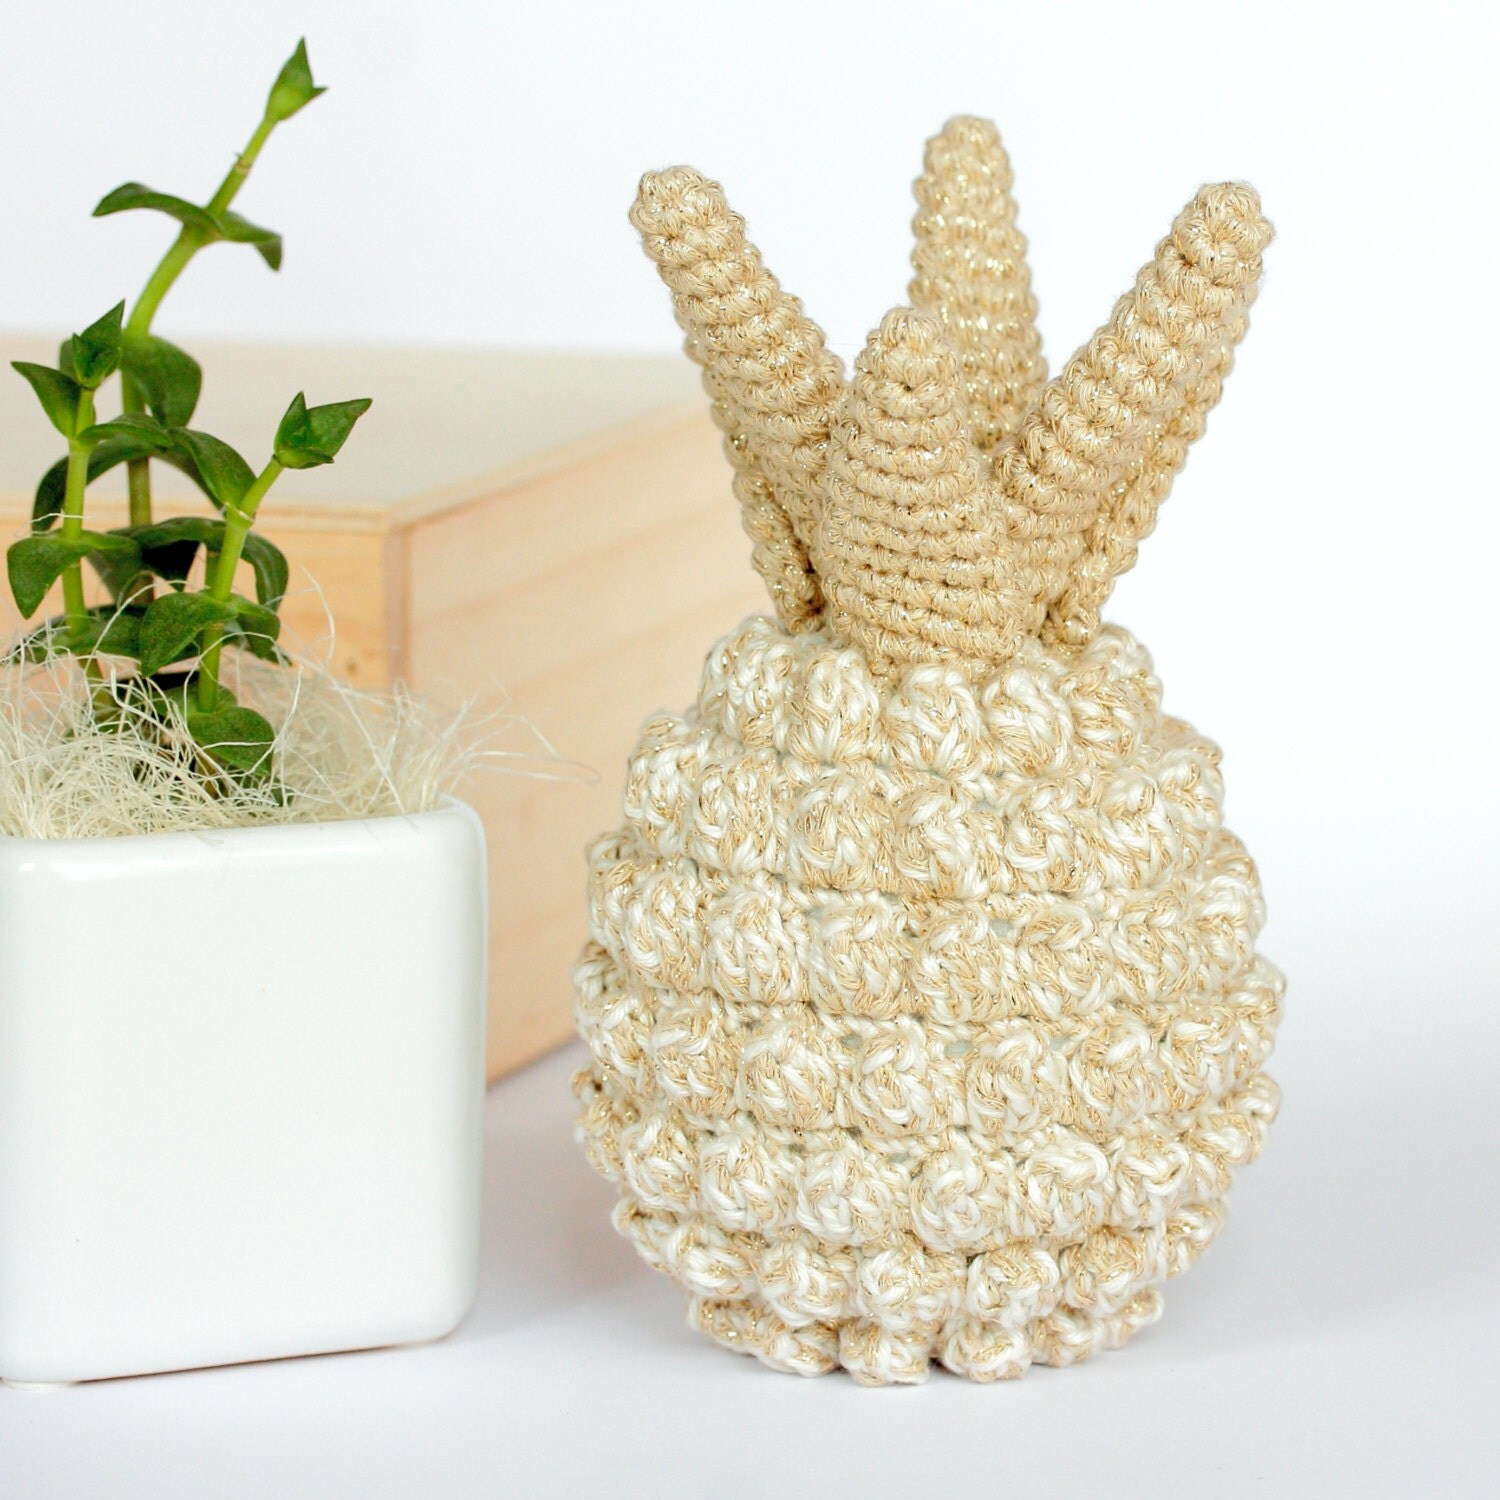 Pineapple home decor crochet pineapple decor pineapple by for Ananas dekoration